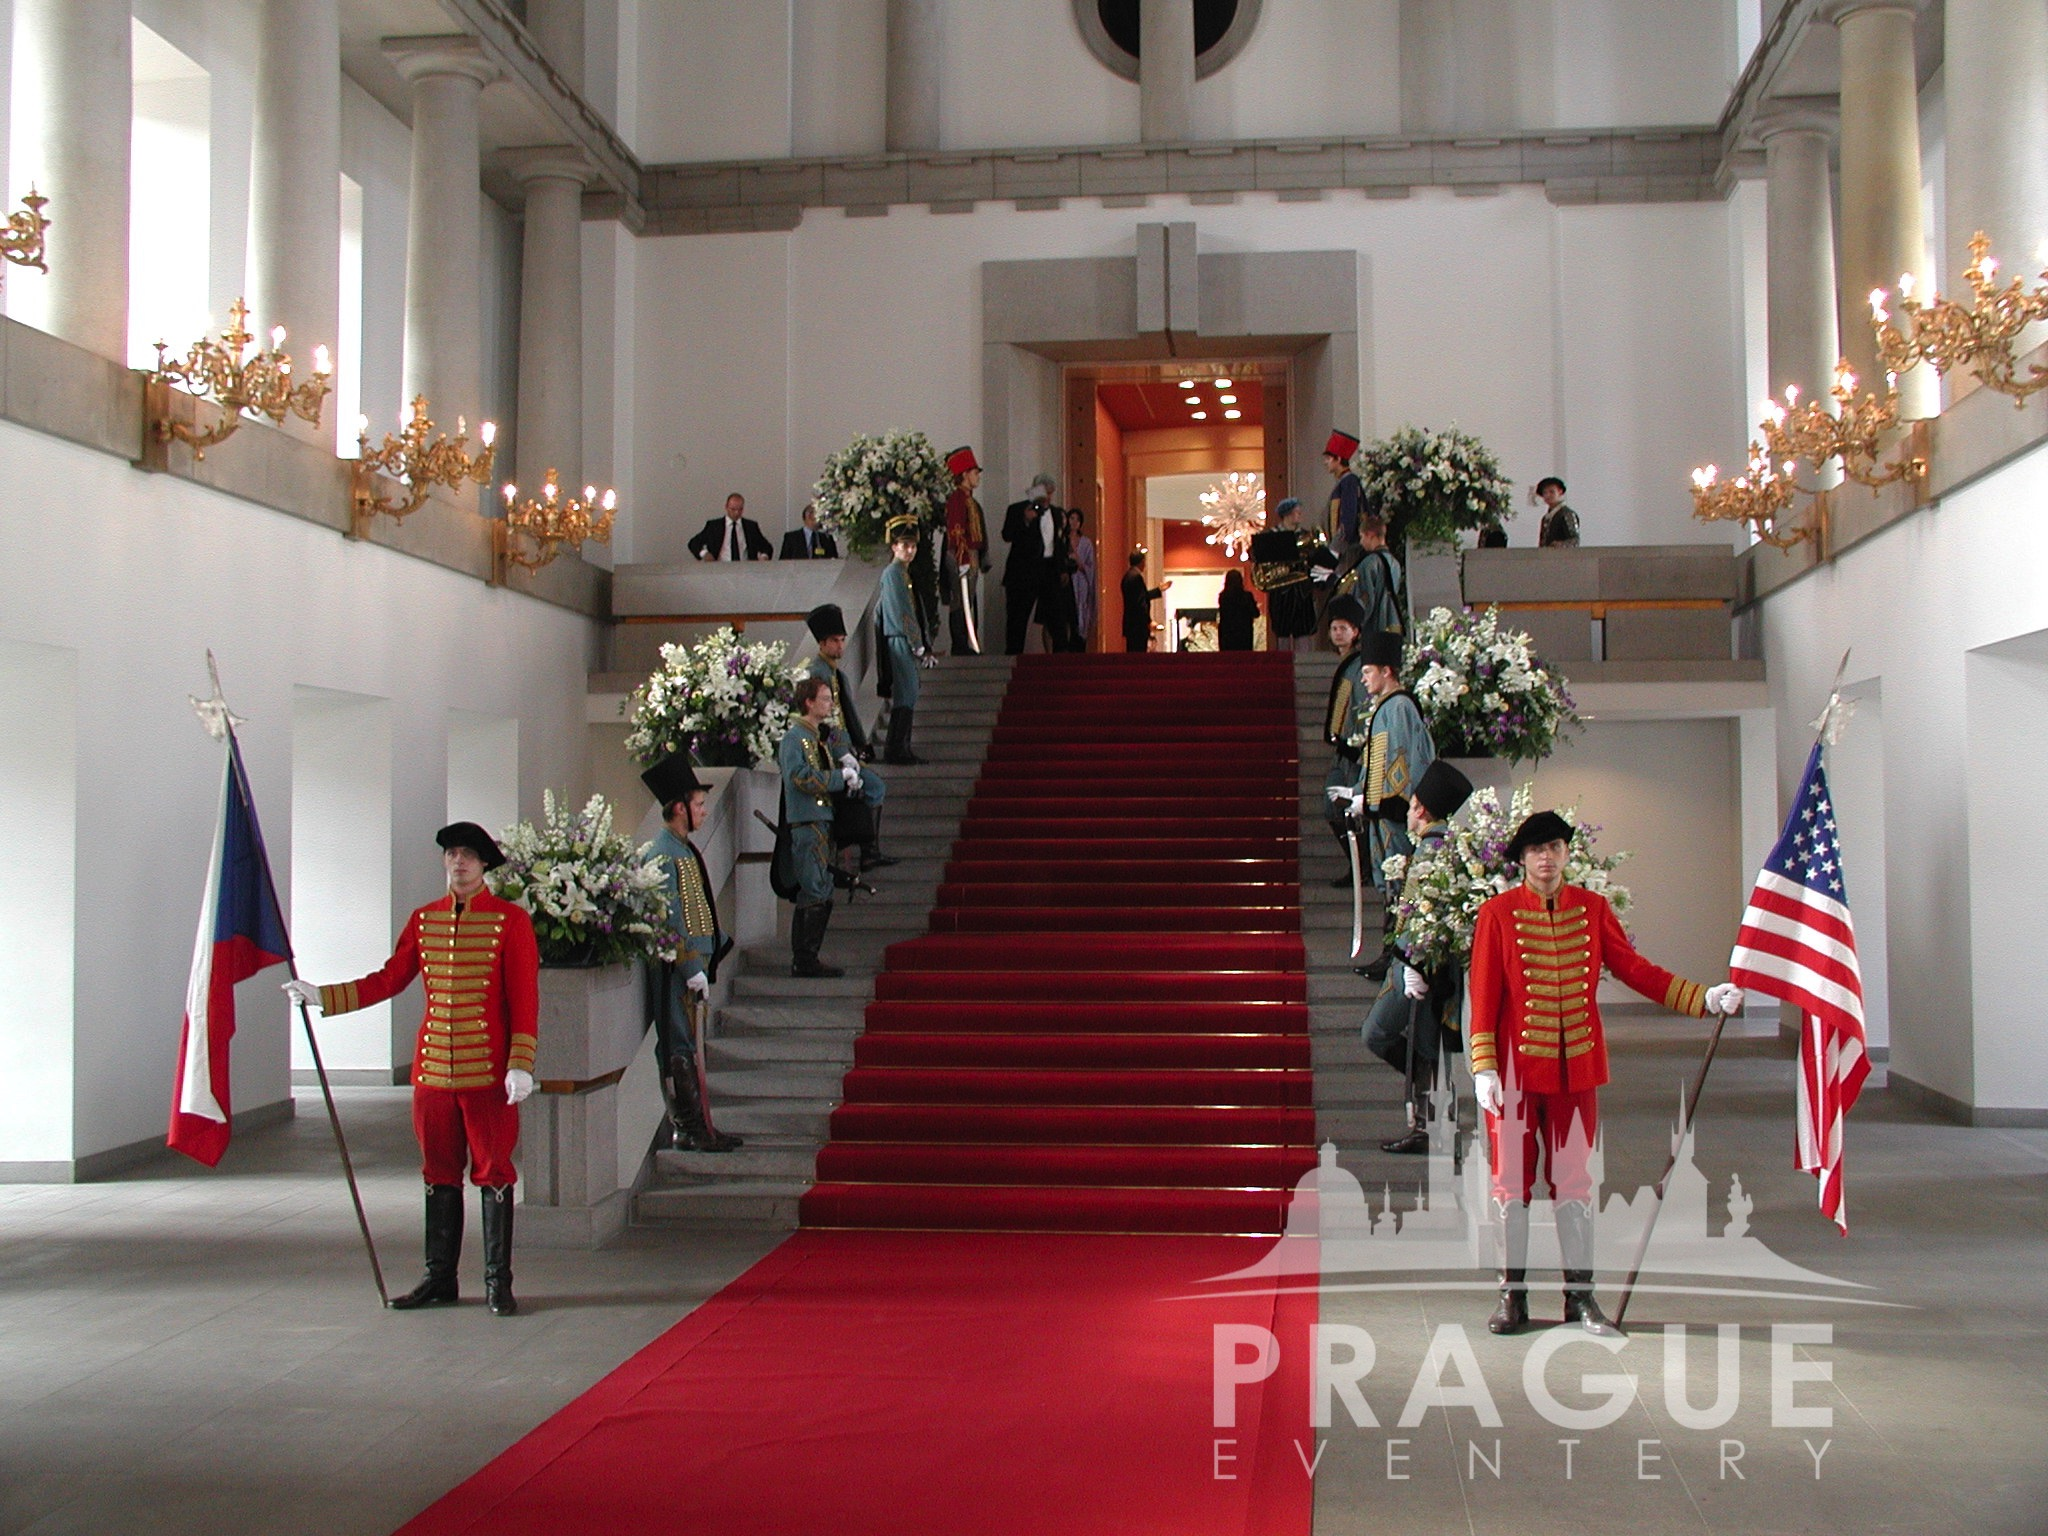 prague castle spanish hall - prague eventery - prague gala venue